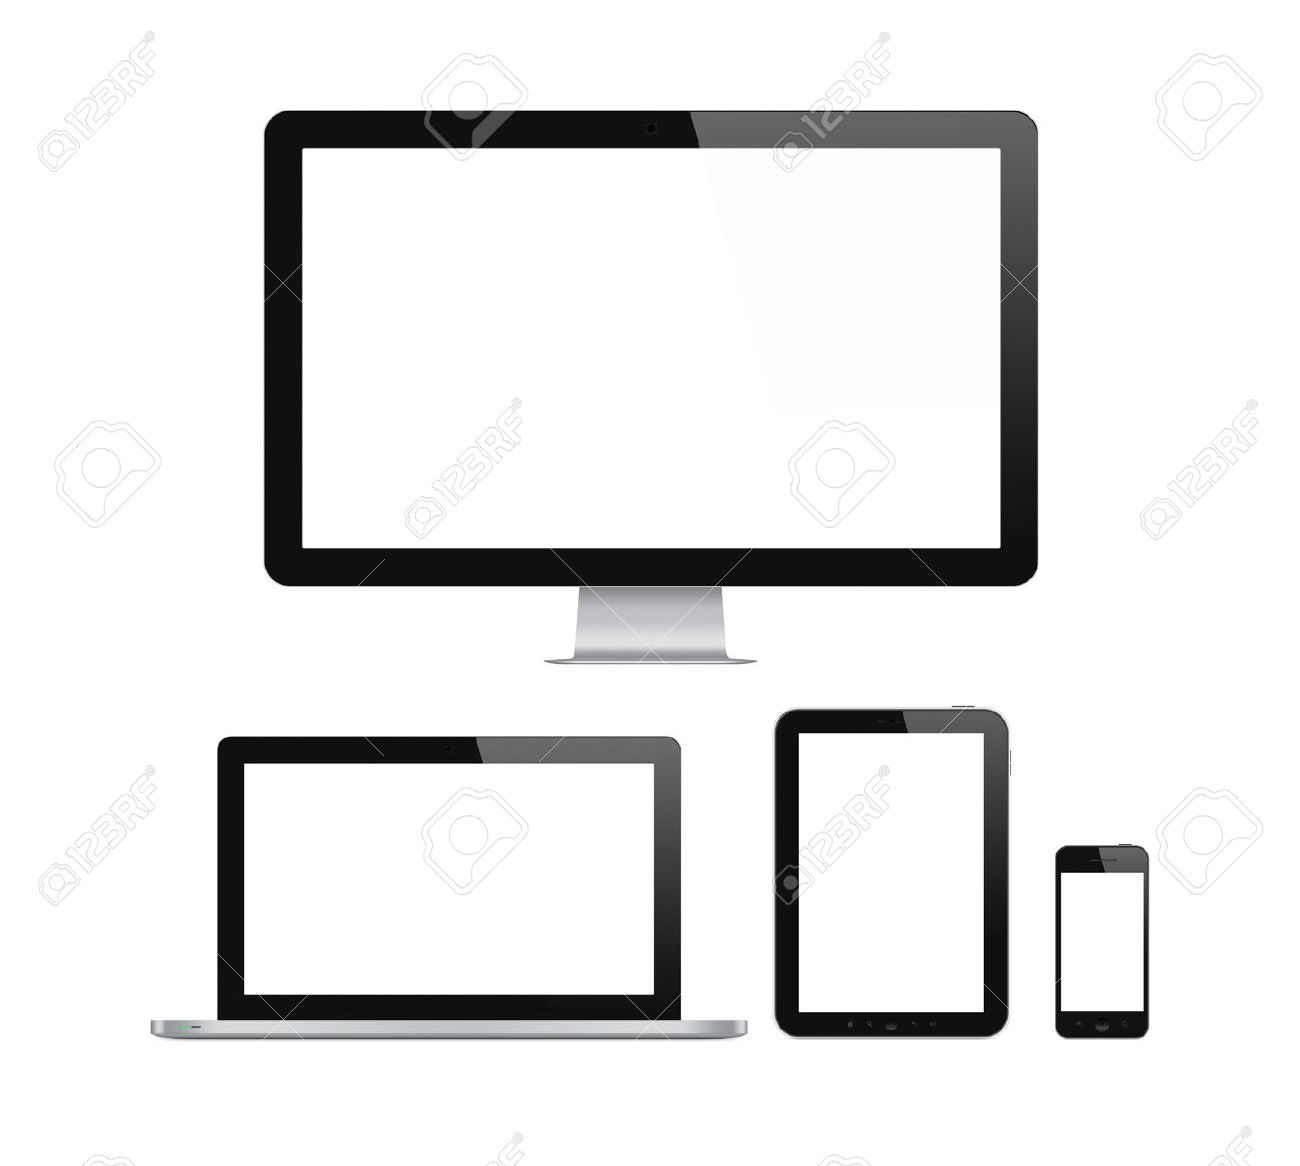 High quality illustration set of modern computer monitor, laptop, digital tablet and mobile phone with blank screen. Isolated on white background. Stock Illustration - 22736800